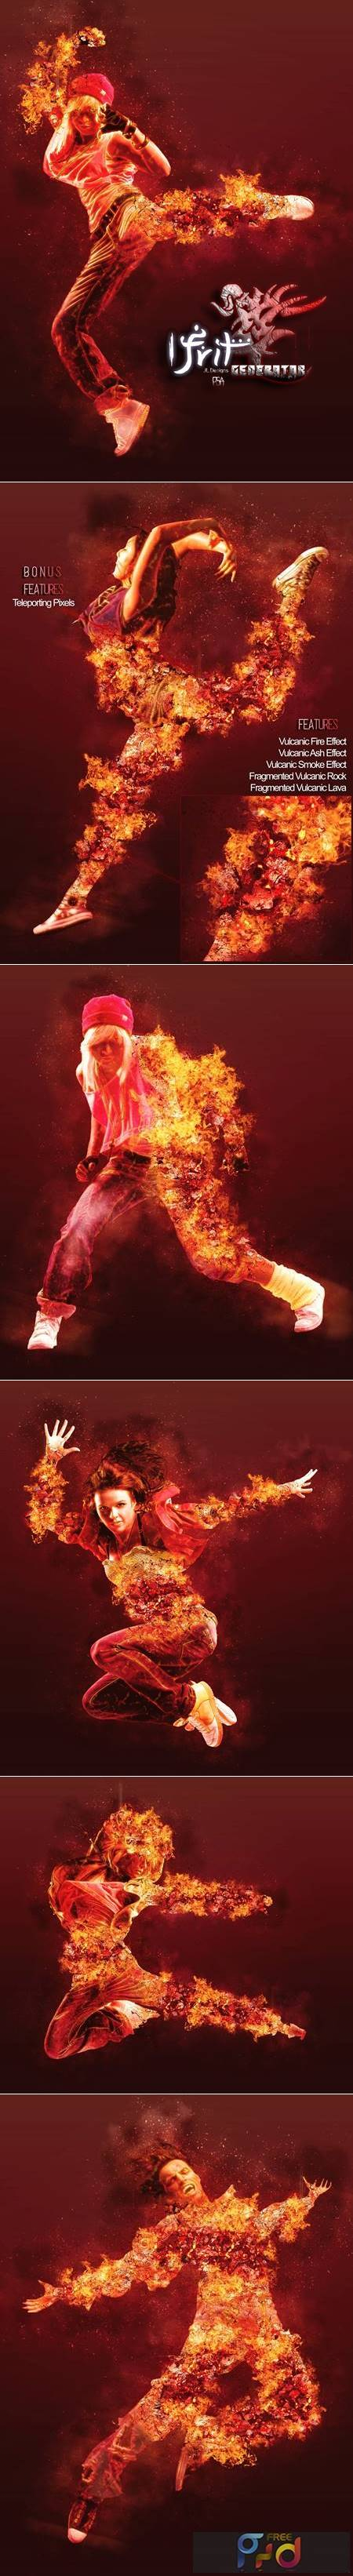 Ifrit Photoshop Action 5299037 1